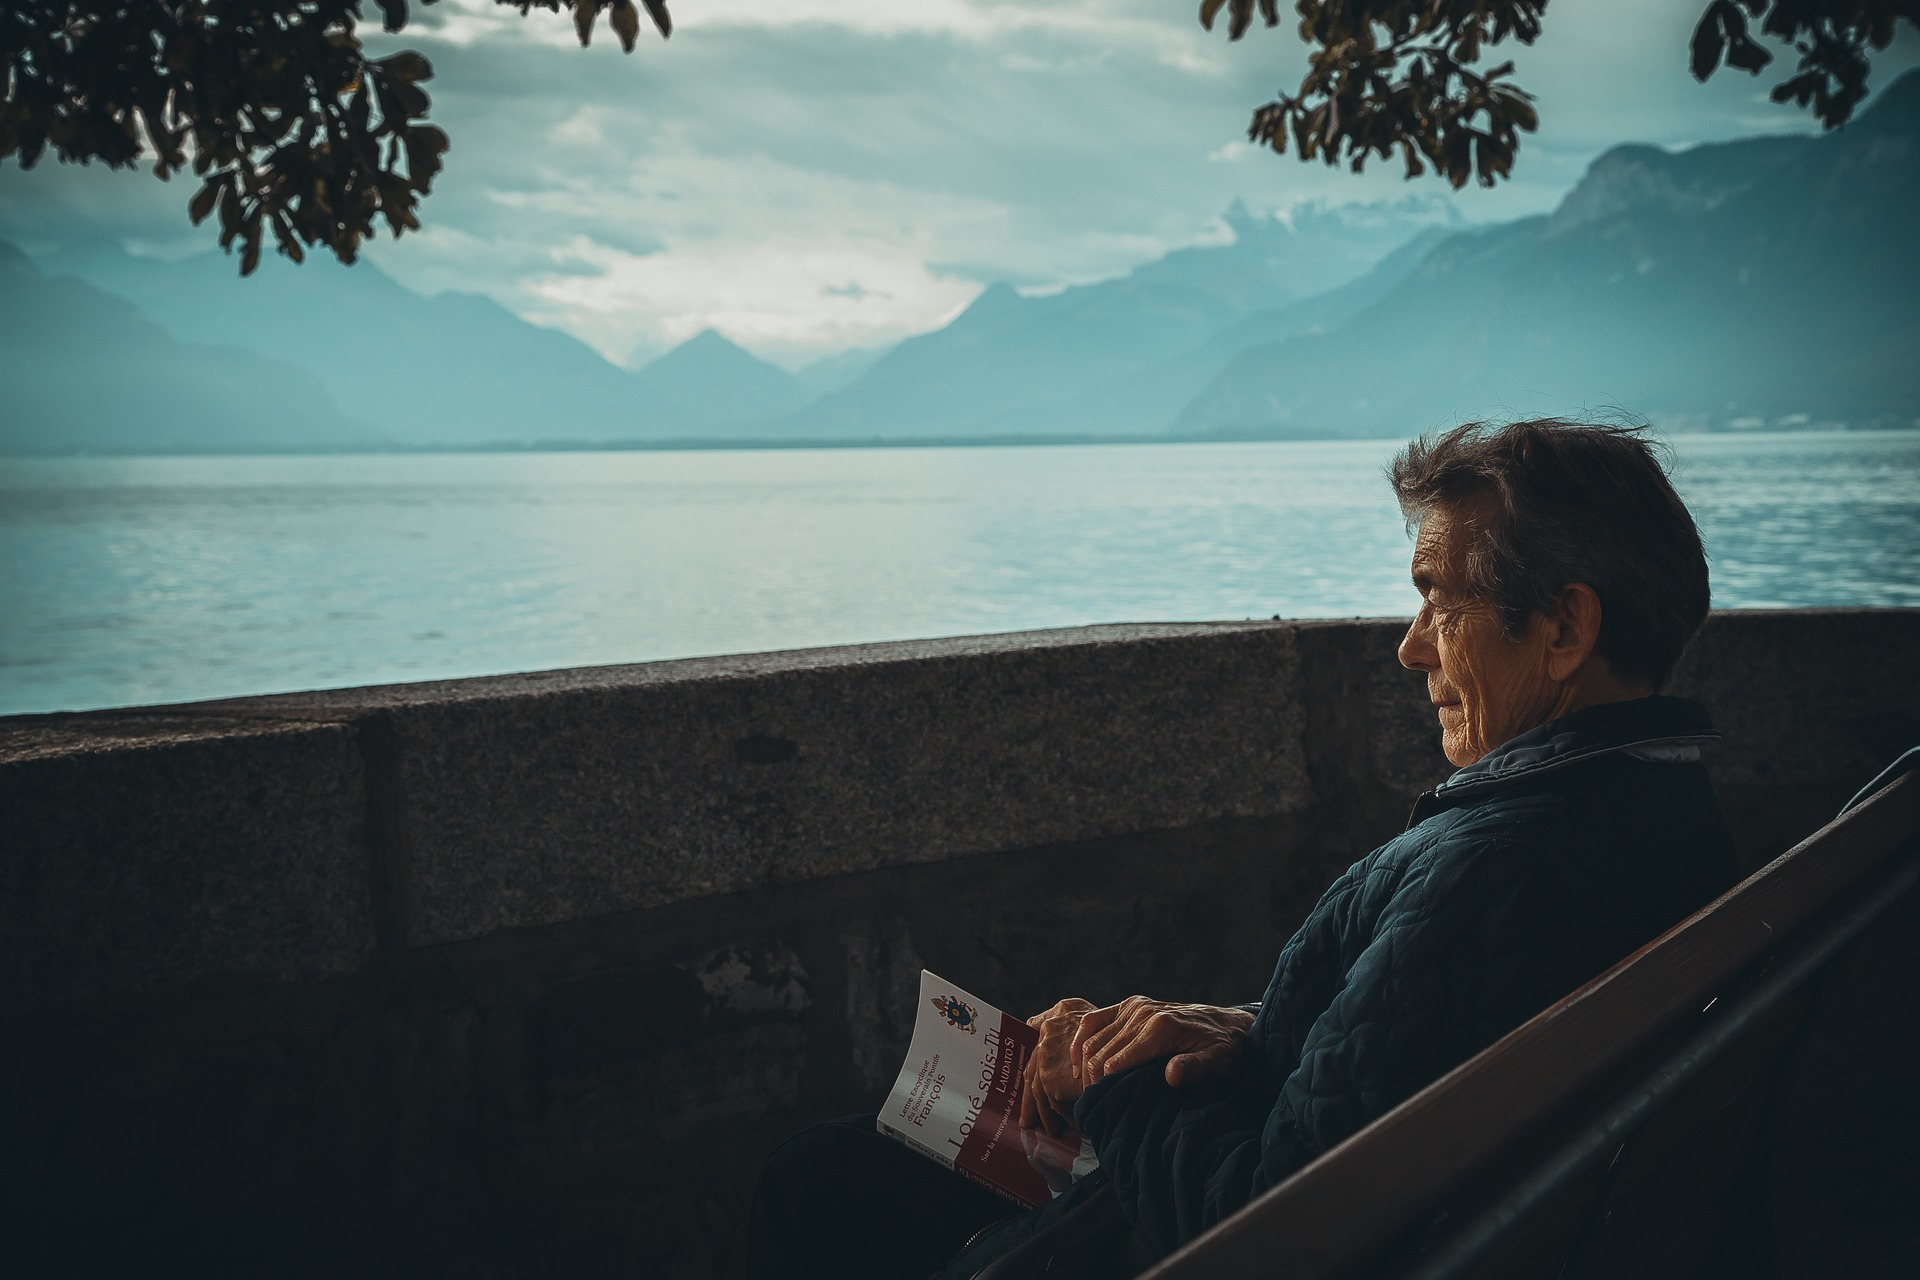 Man reading book overlooking lake